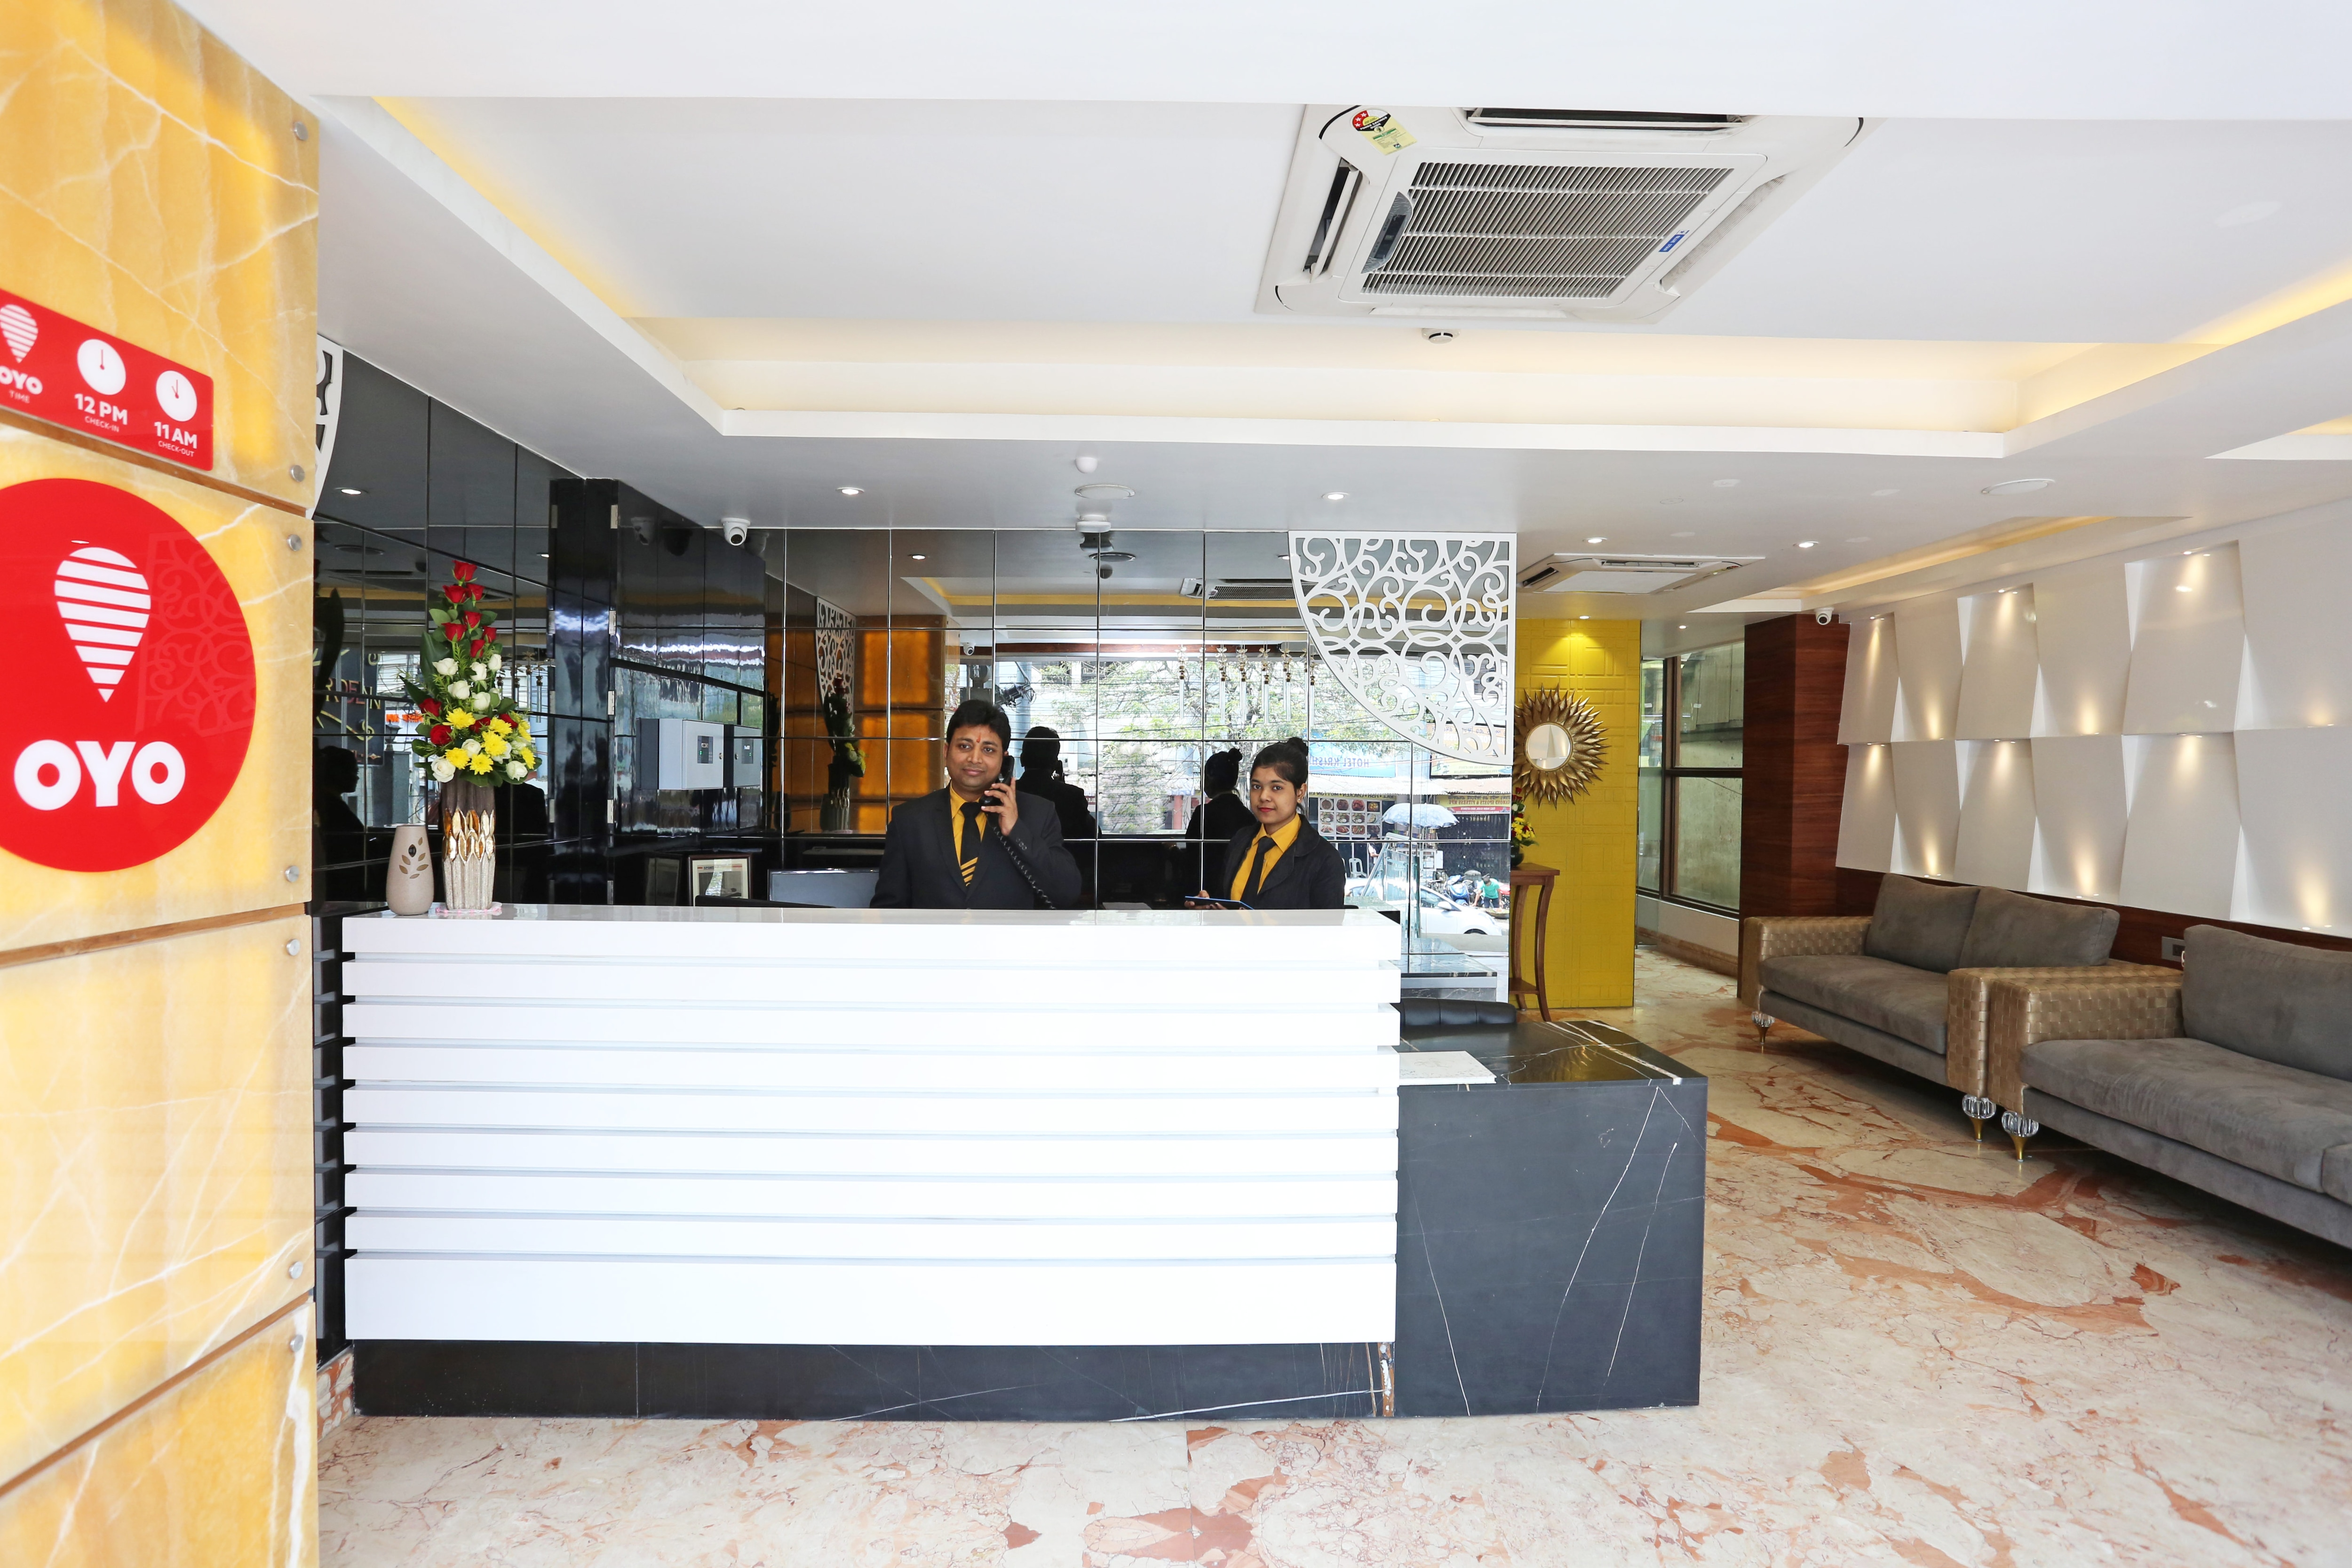 Guwahati Hotels with card-payment, Price @ ₹423 | Pay at